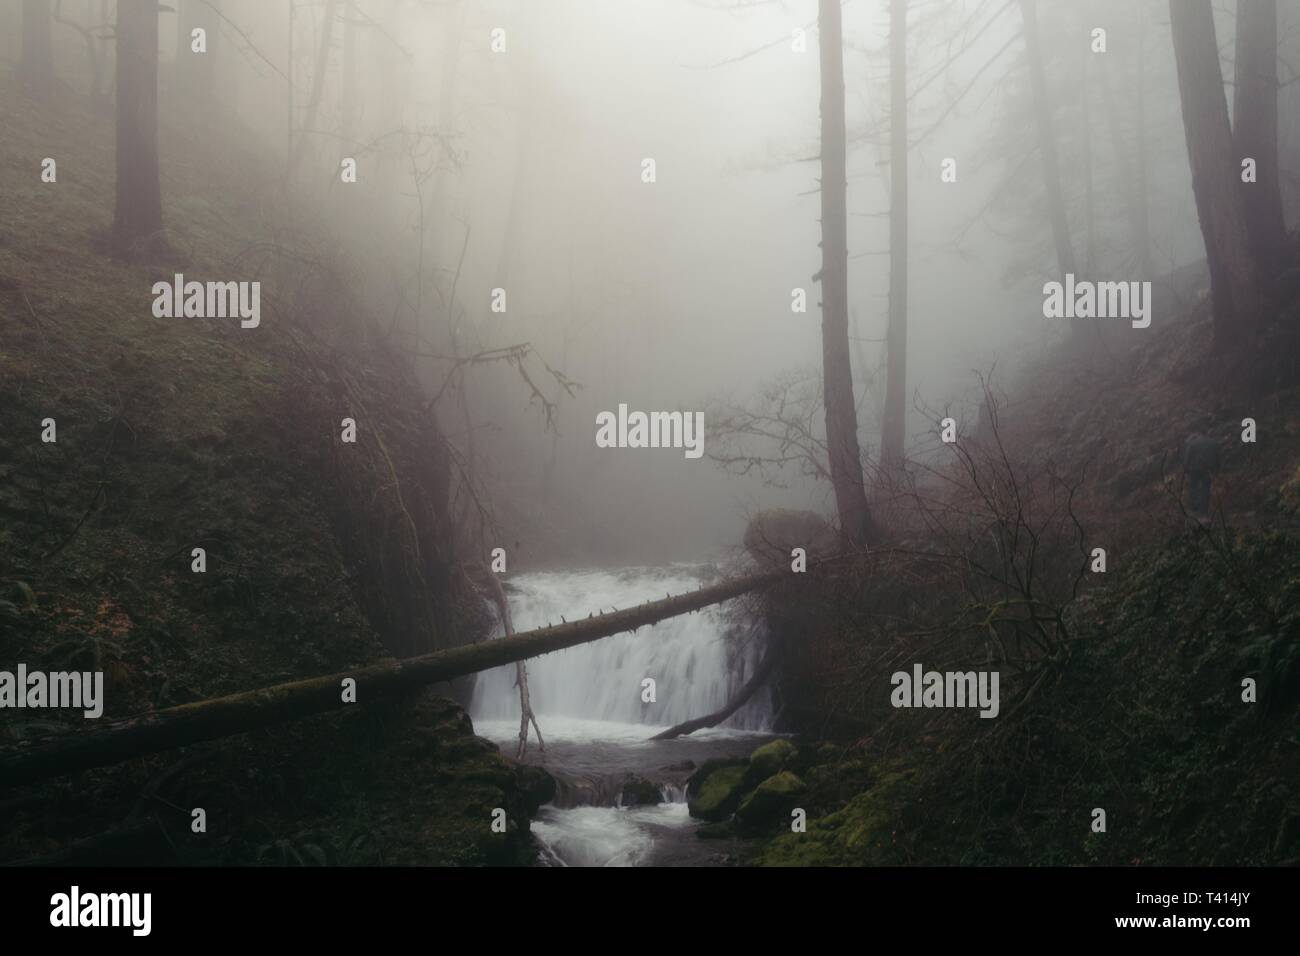 A Tiny Waterfall In A Creepy Dark Foggy Forest With Thin